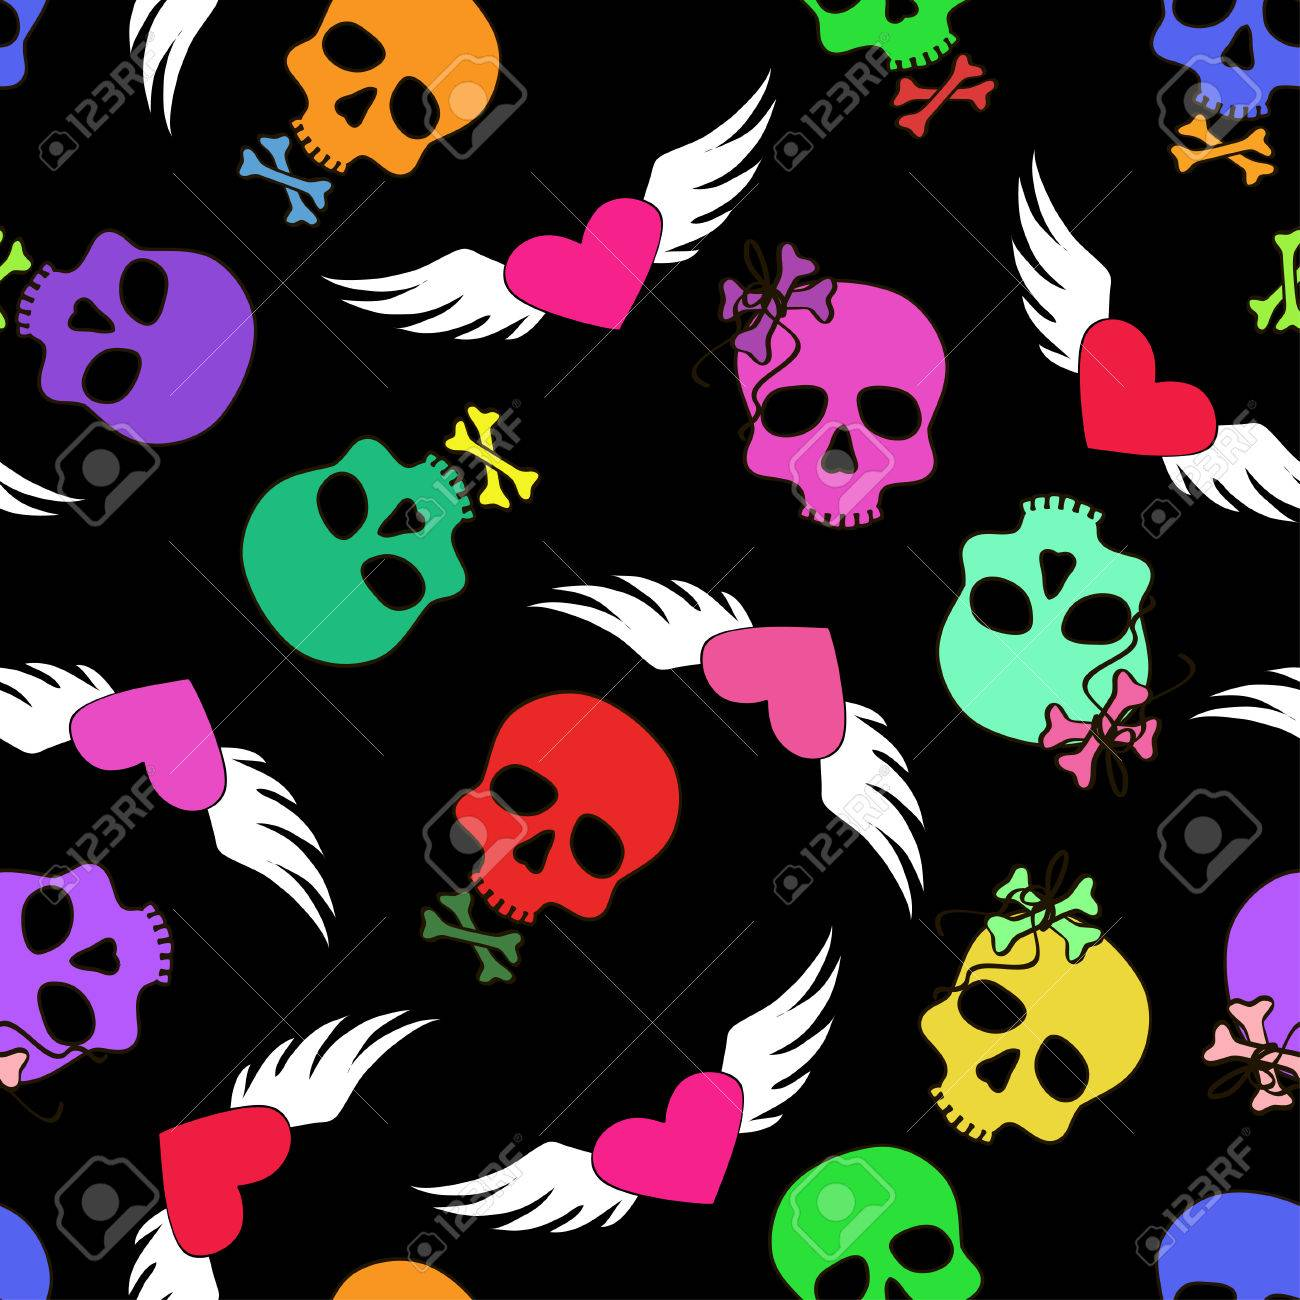 colorful seamless pattern of funny cartoon skulls and winged